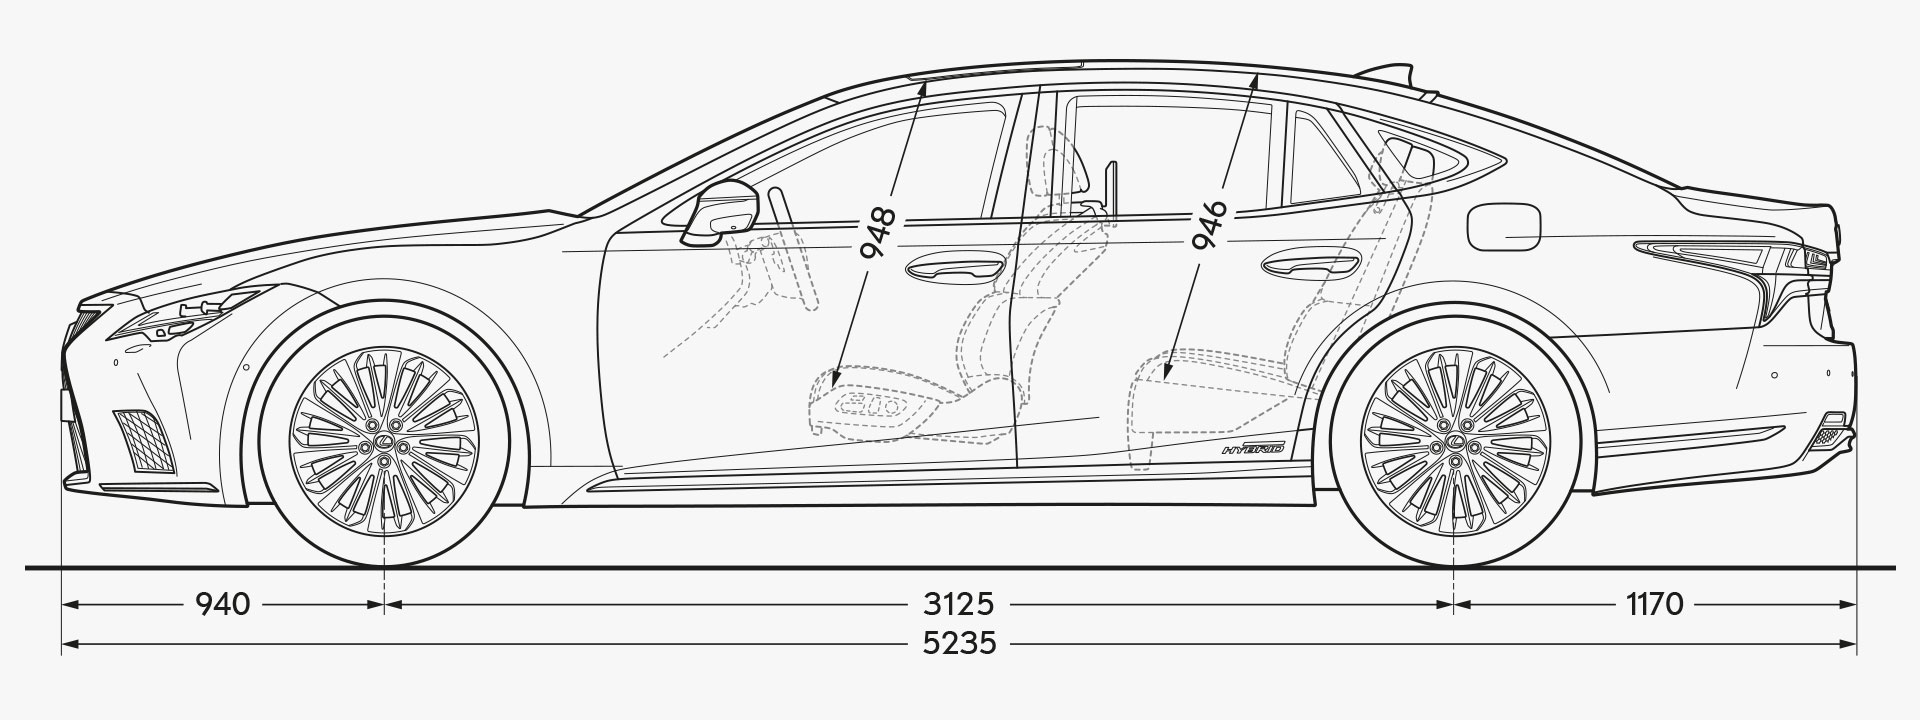 LS Side Dimensions Image